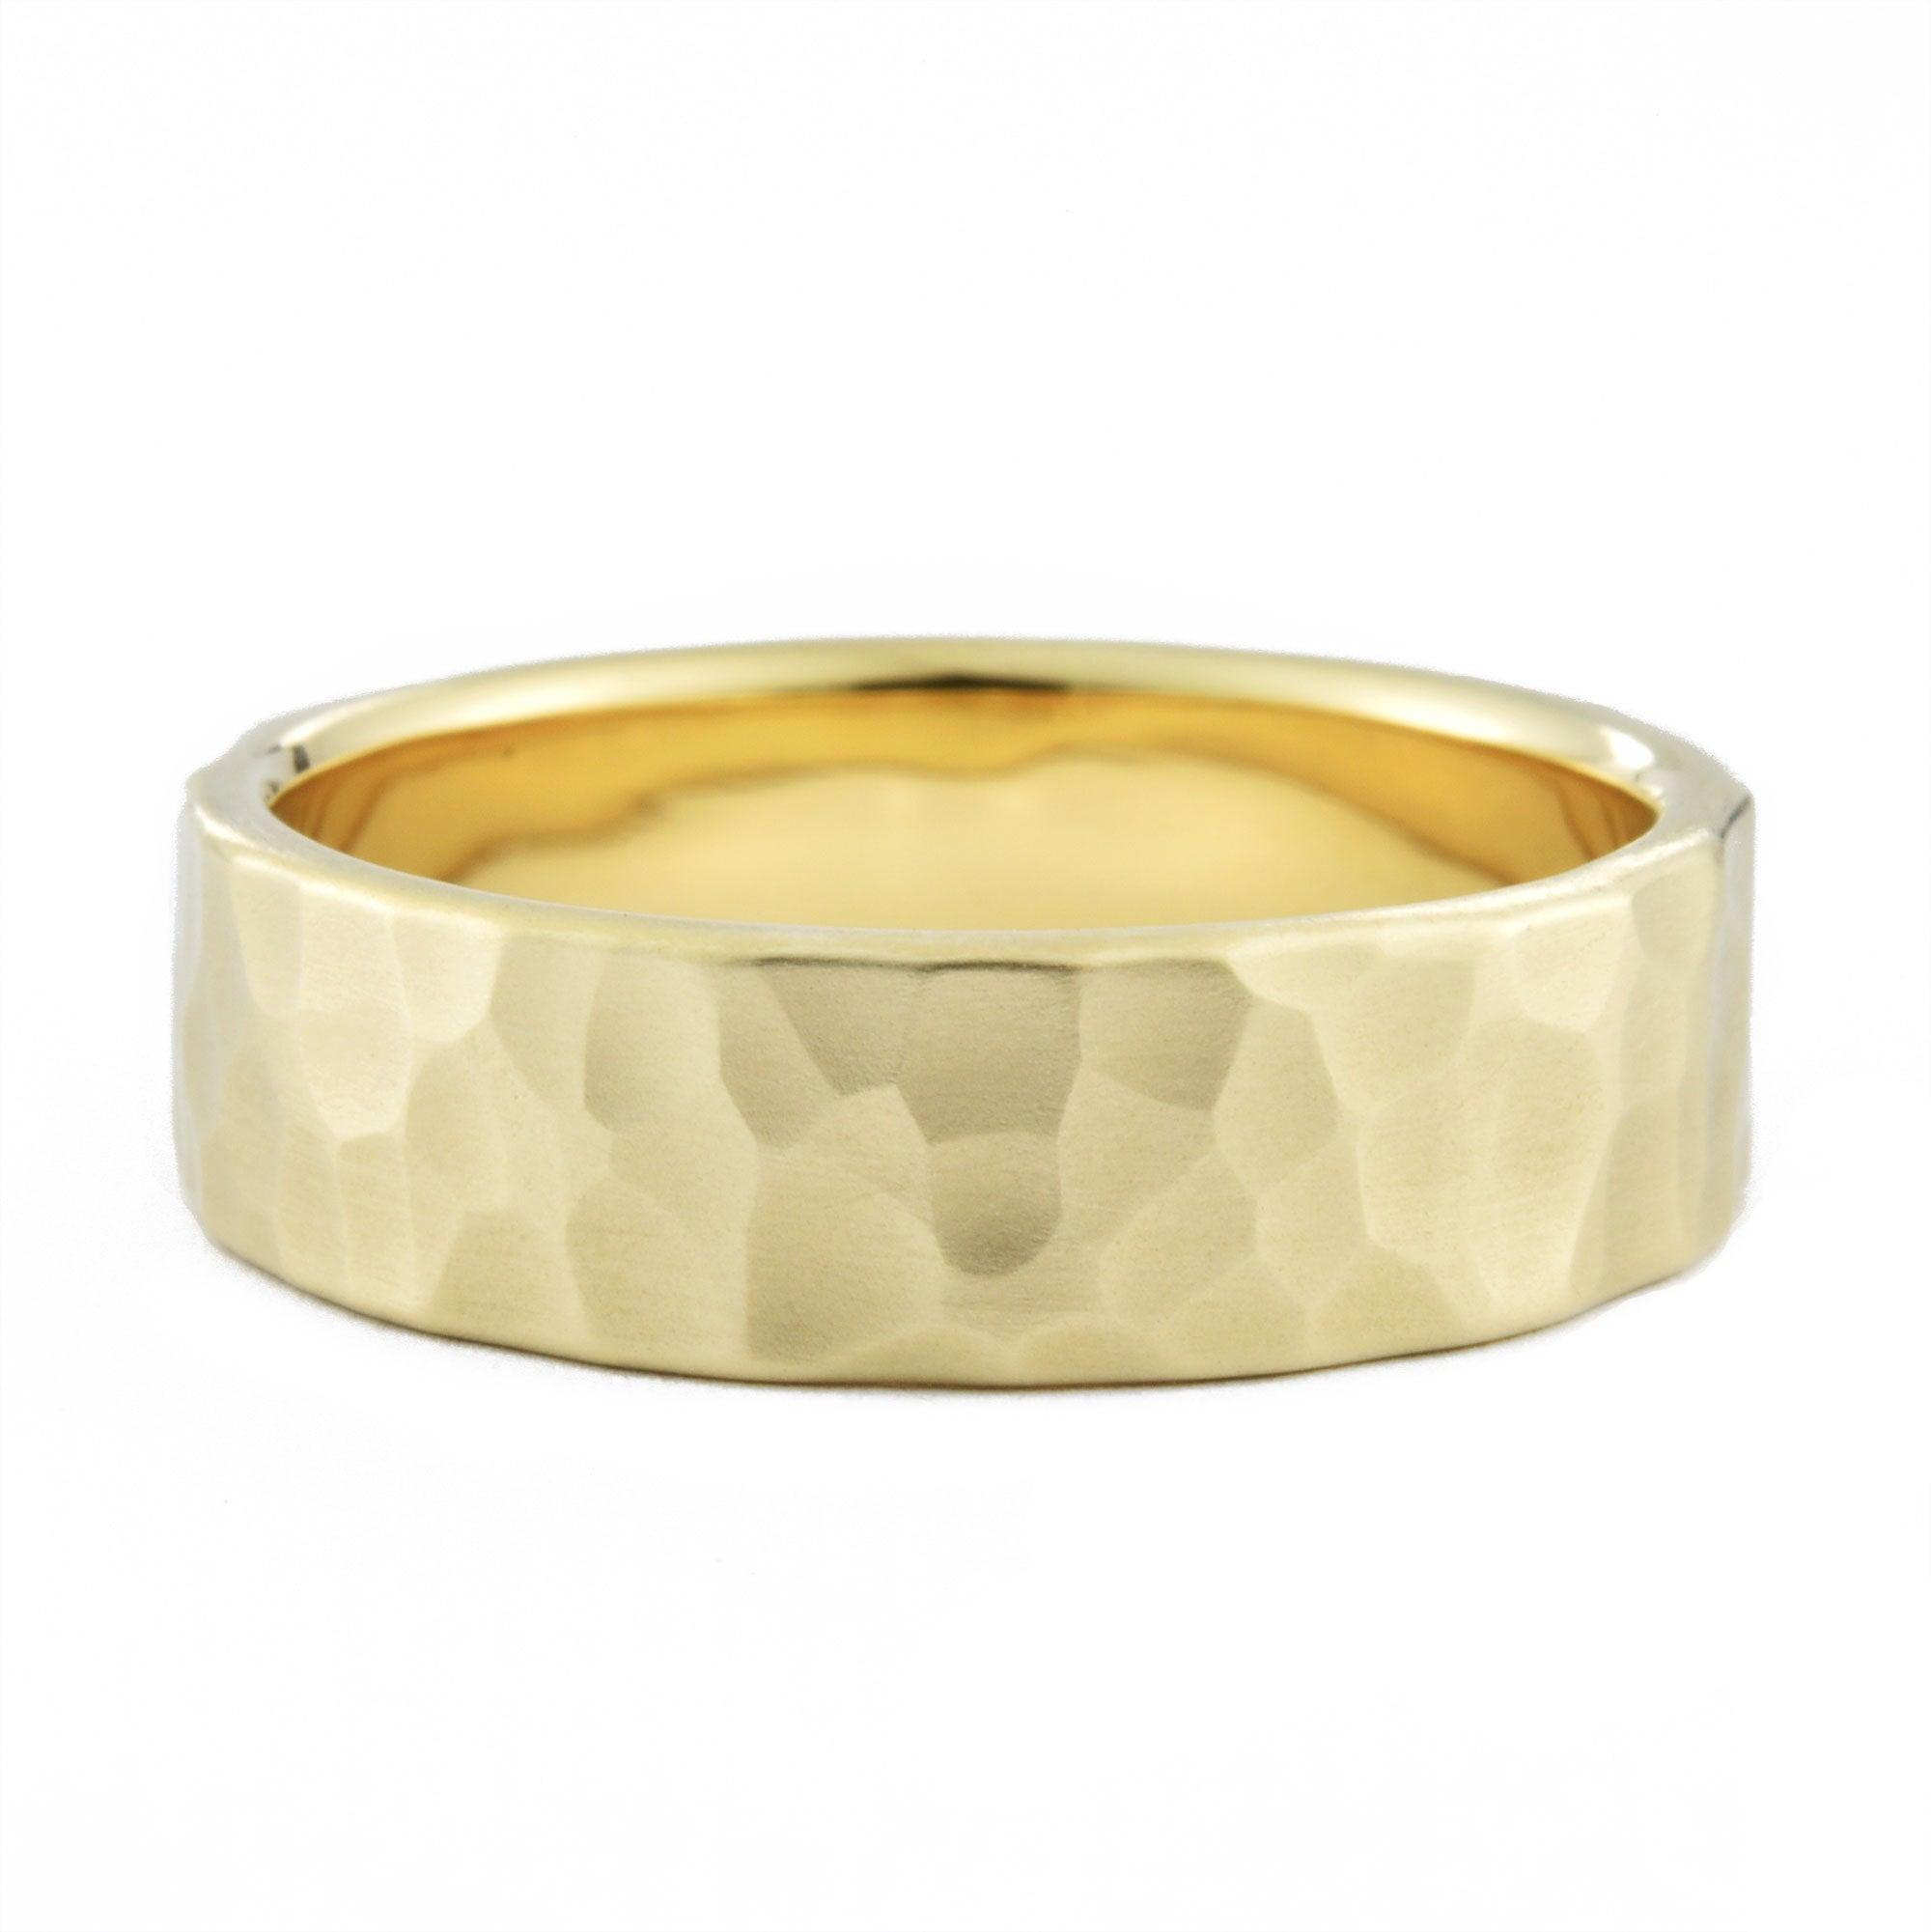 6mm Men's Hammered Wedding Band in yellow gold